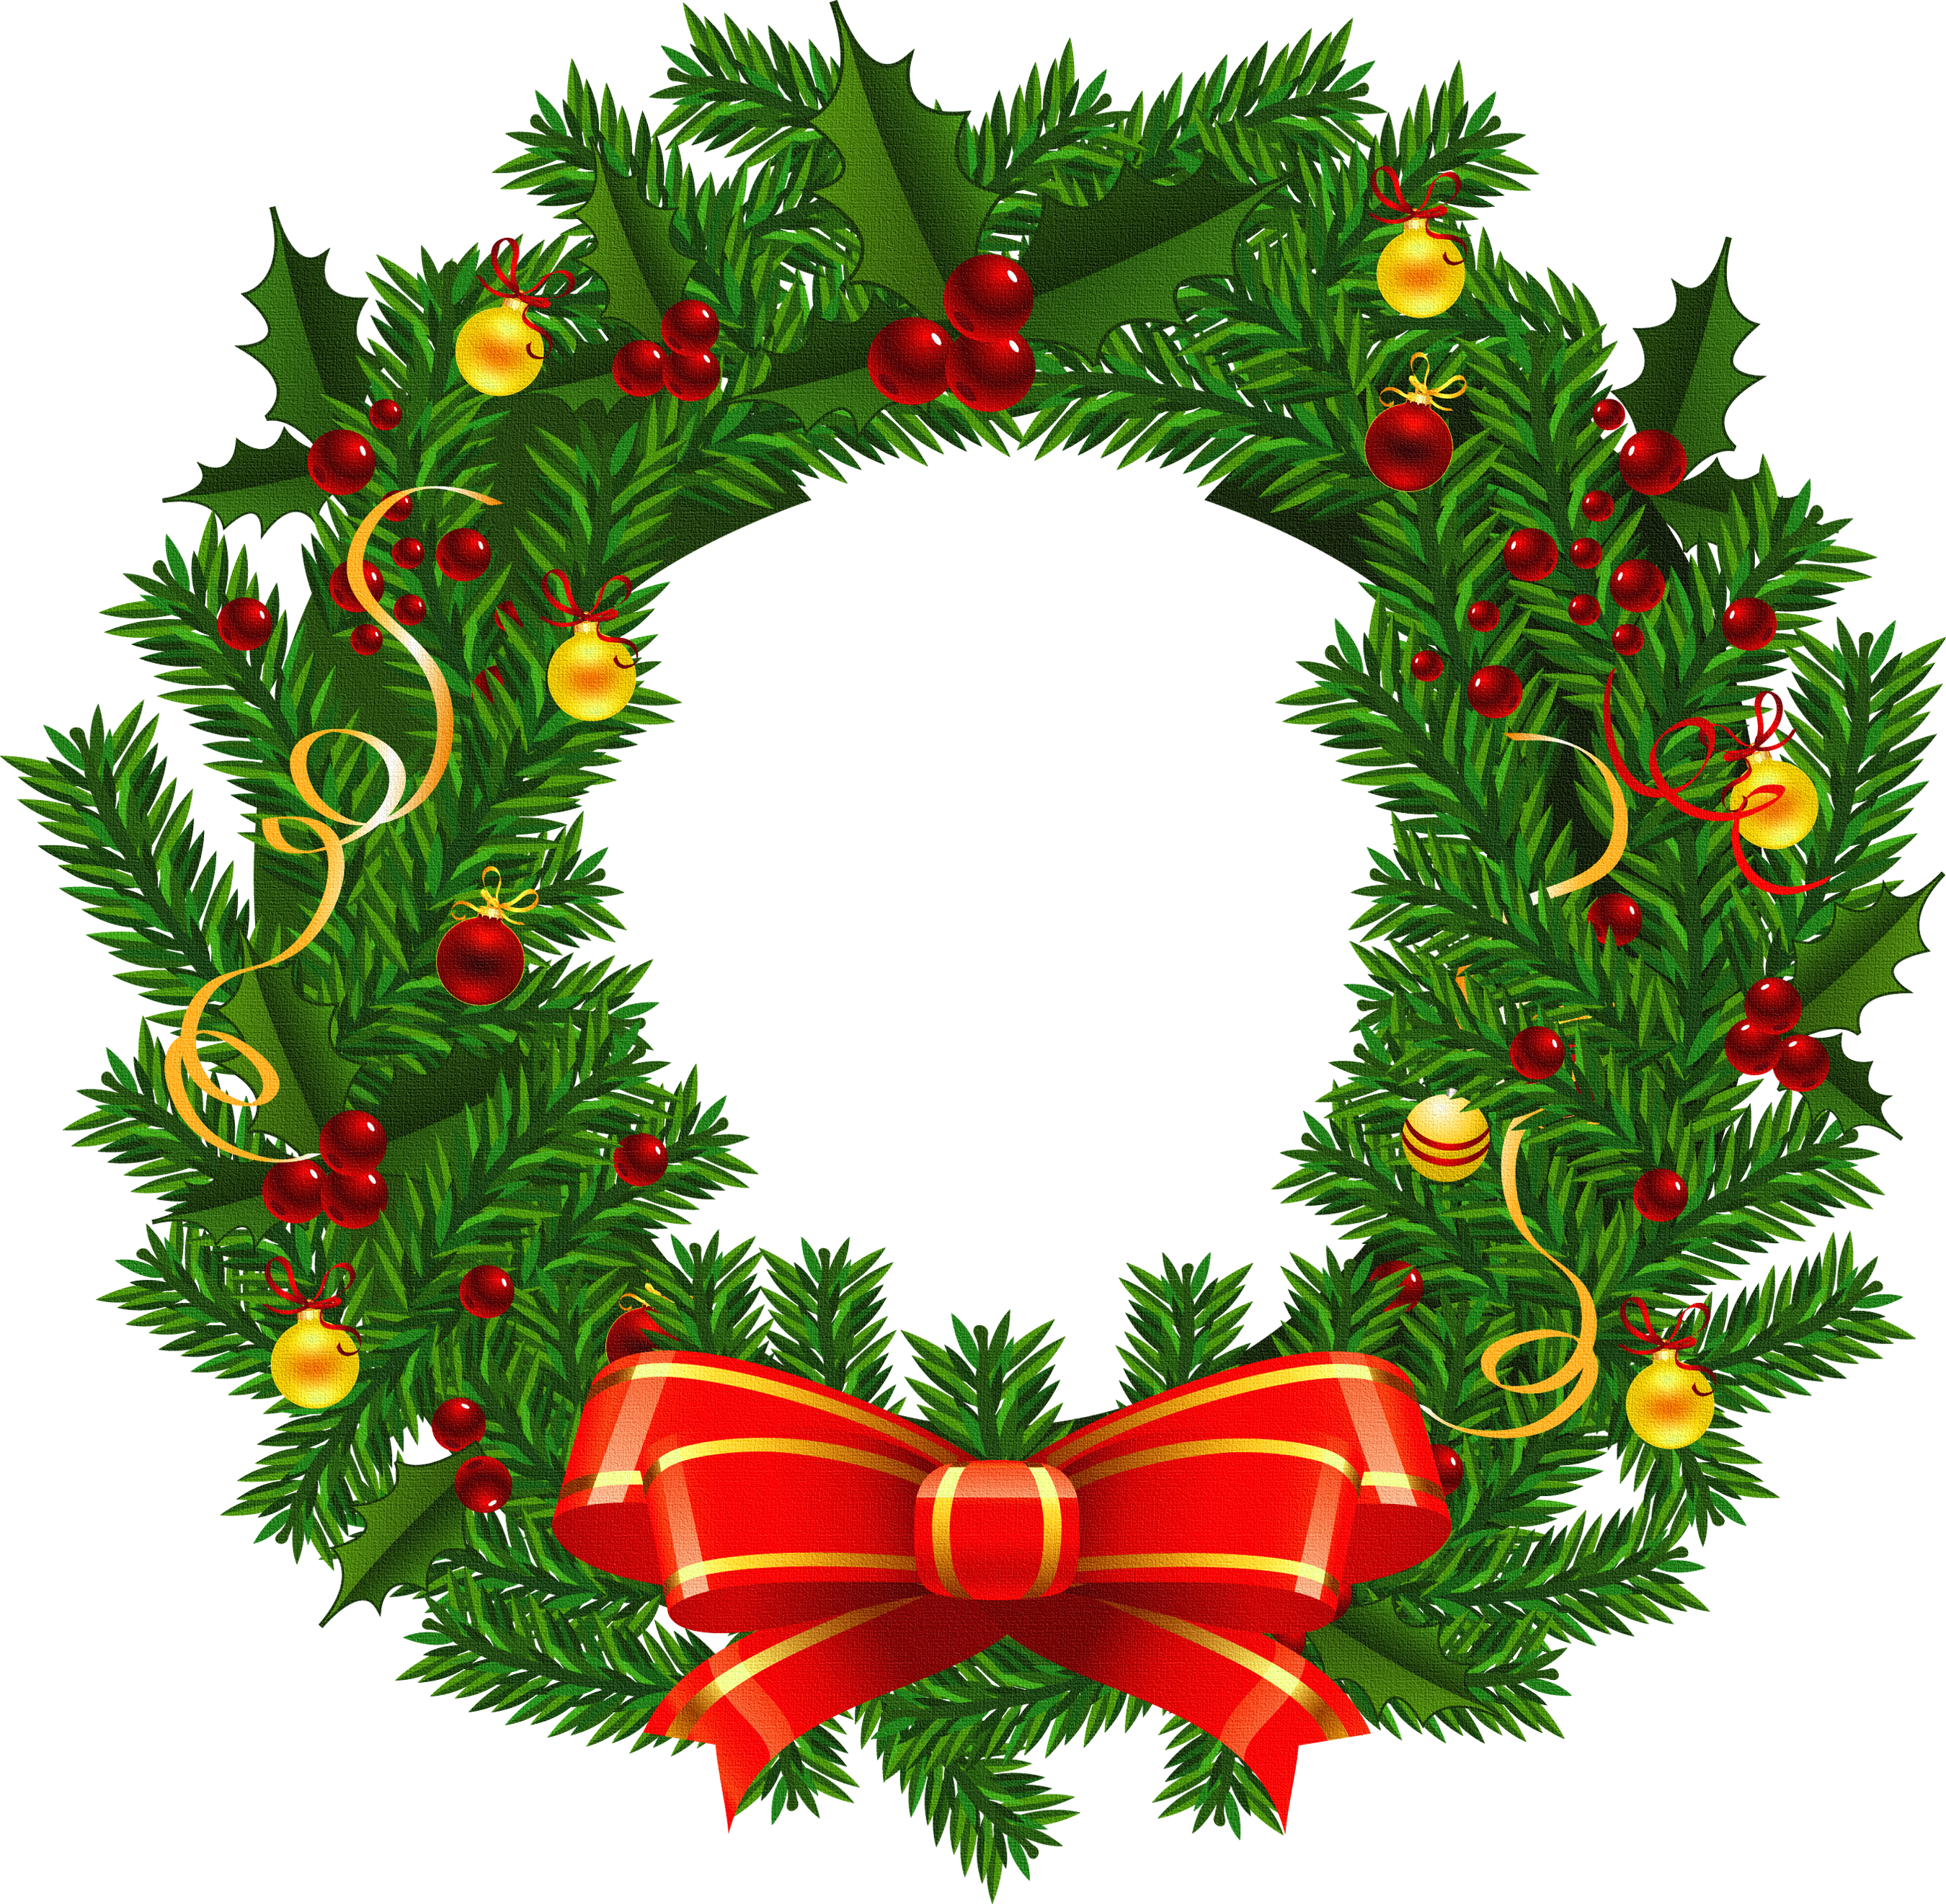 Xmas Stuff For Christmas Wreath Images Clip Art - Free PNG HD Christmas Wreath